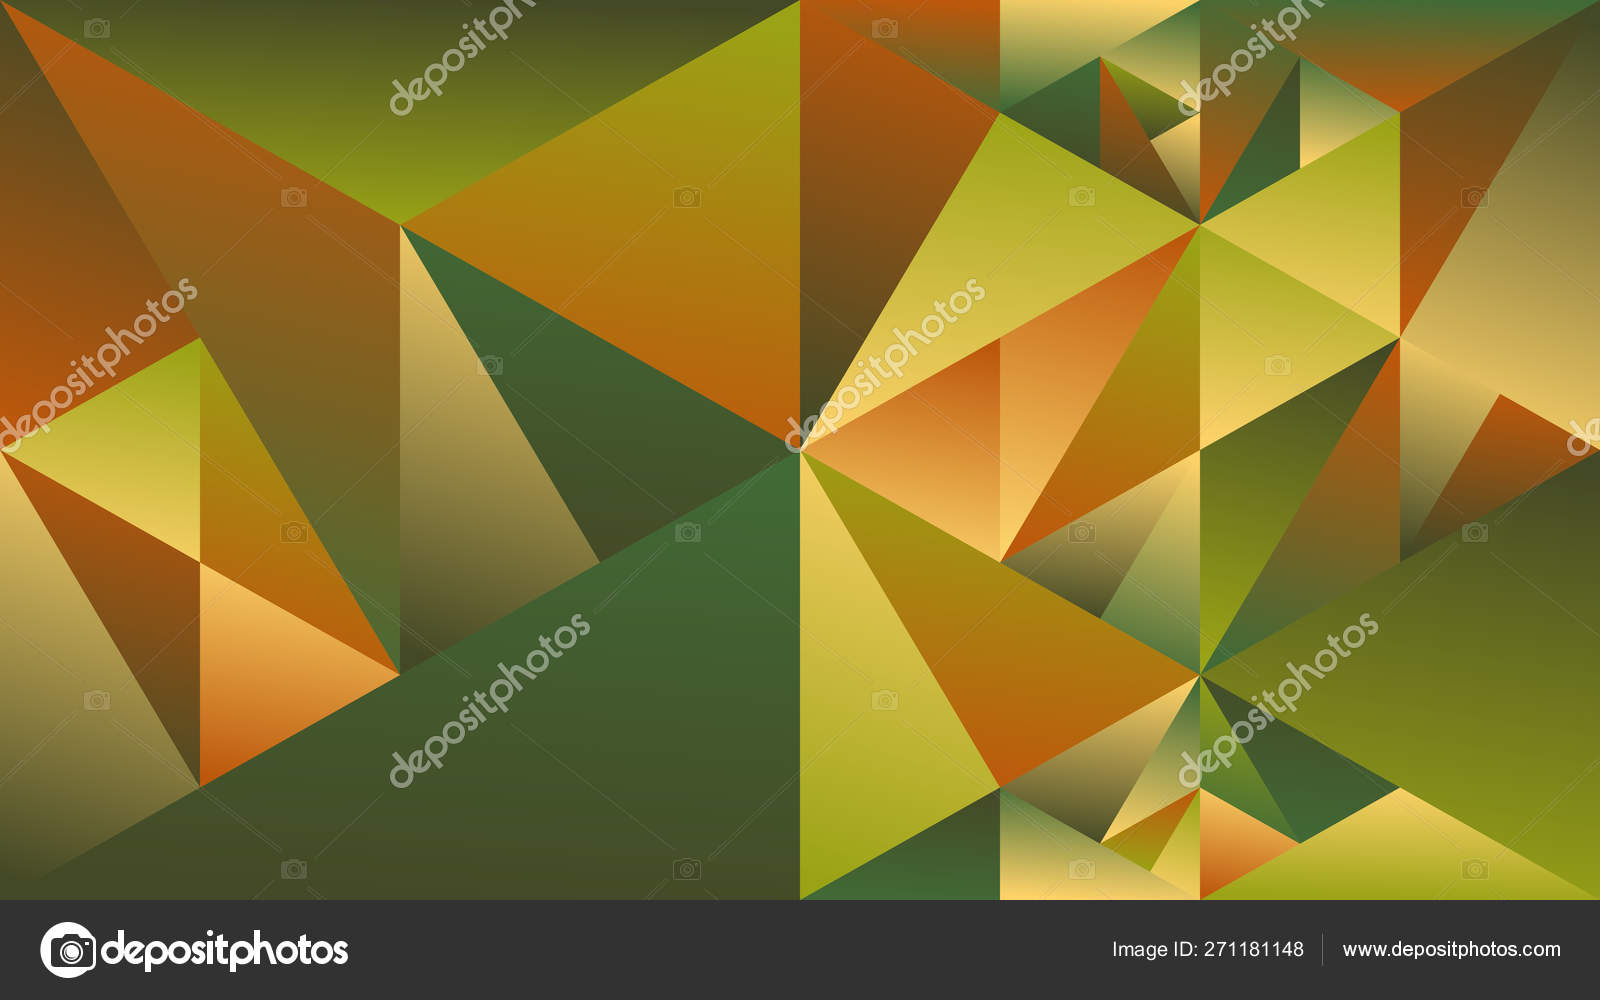 Download 4100 Koleksi Background Vector Hd Paling Keren